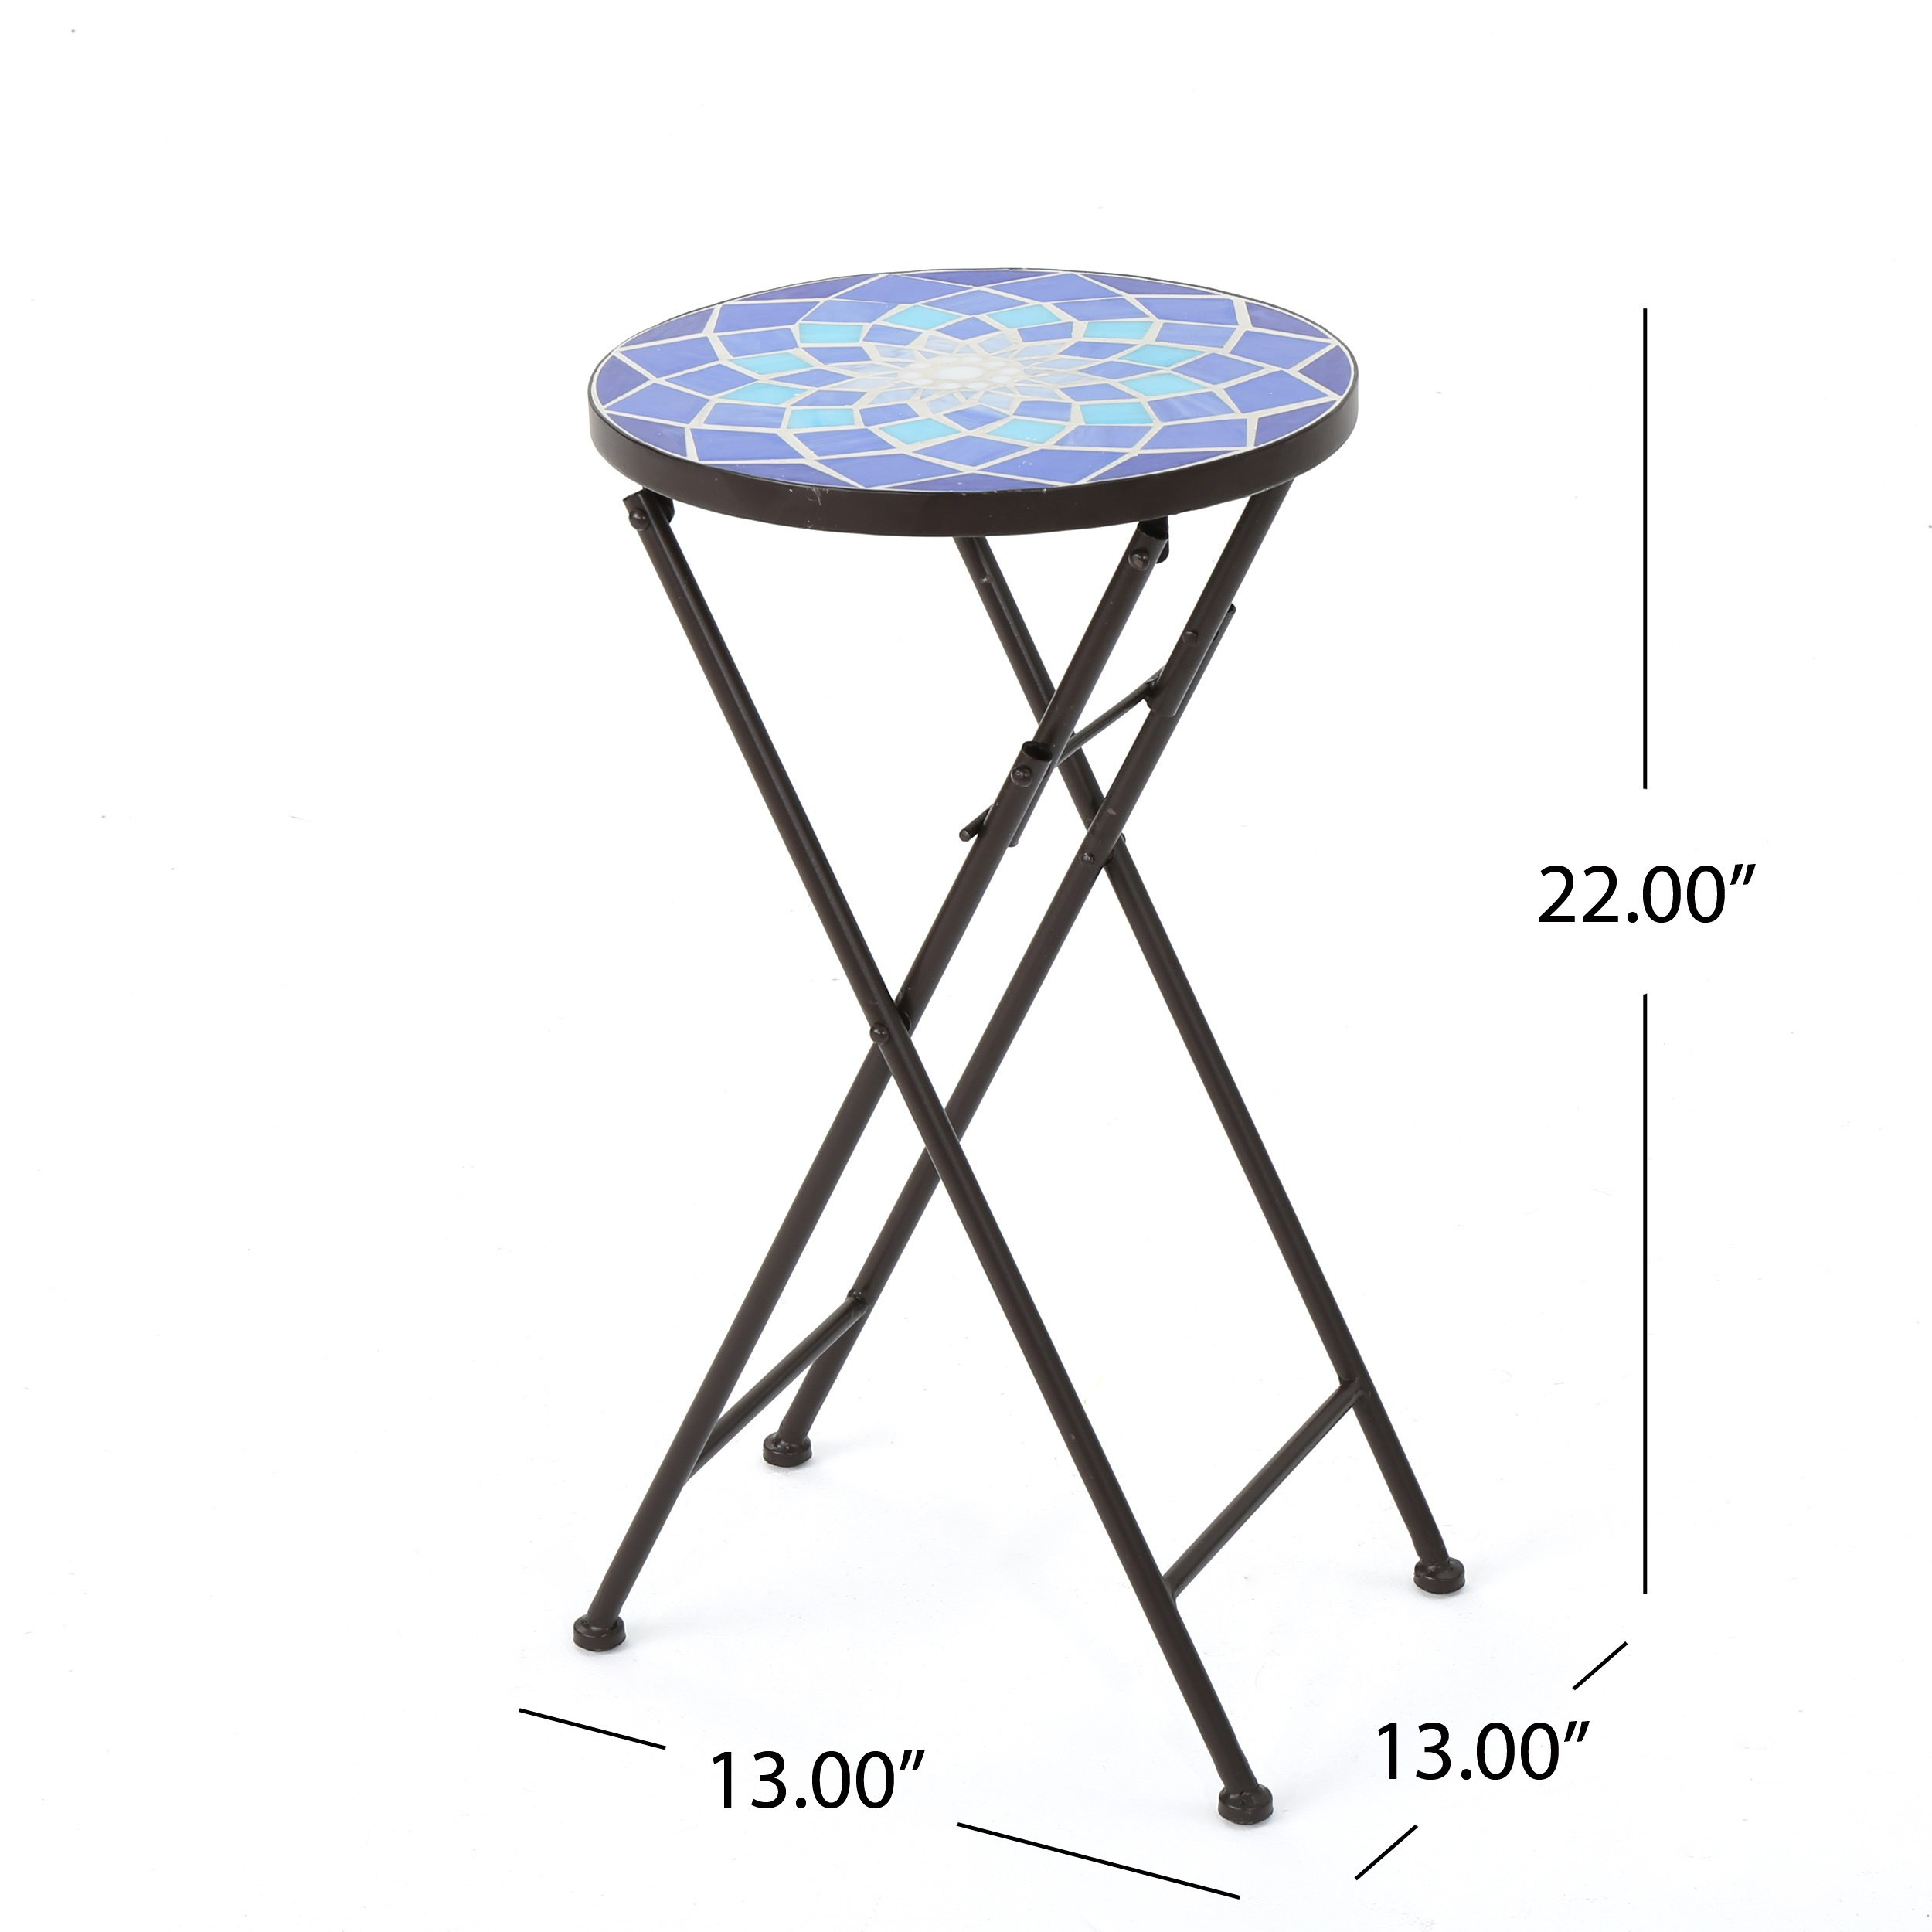 azure outdoor round tile side table planter christopher knight home mosaic stone accent free shipping orders over steel hairpin legs antique brass bar stools bunnings decorative